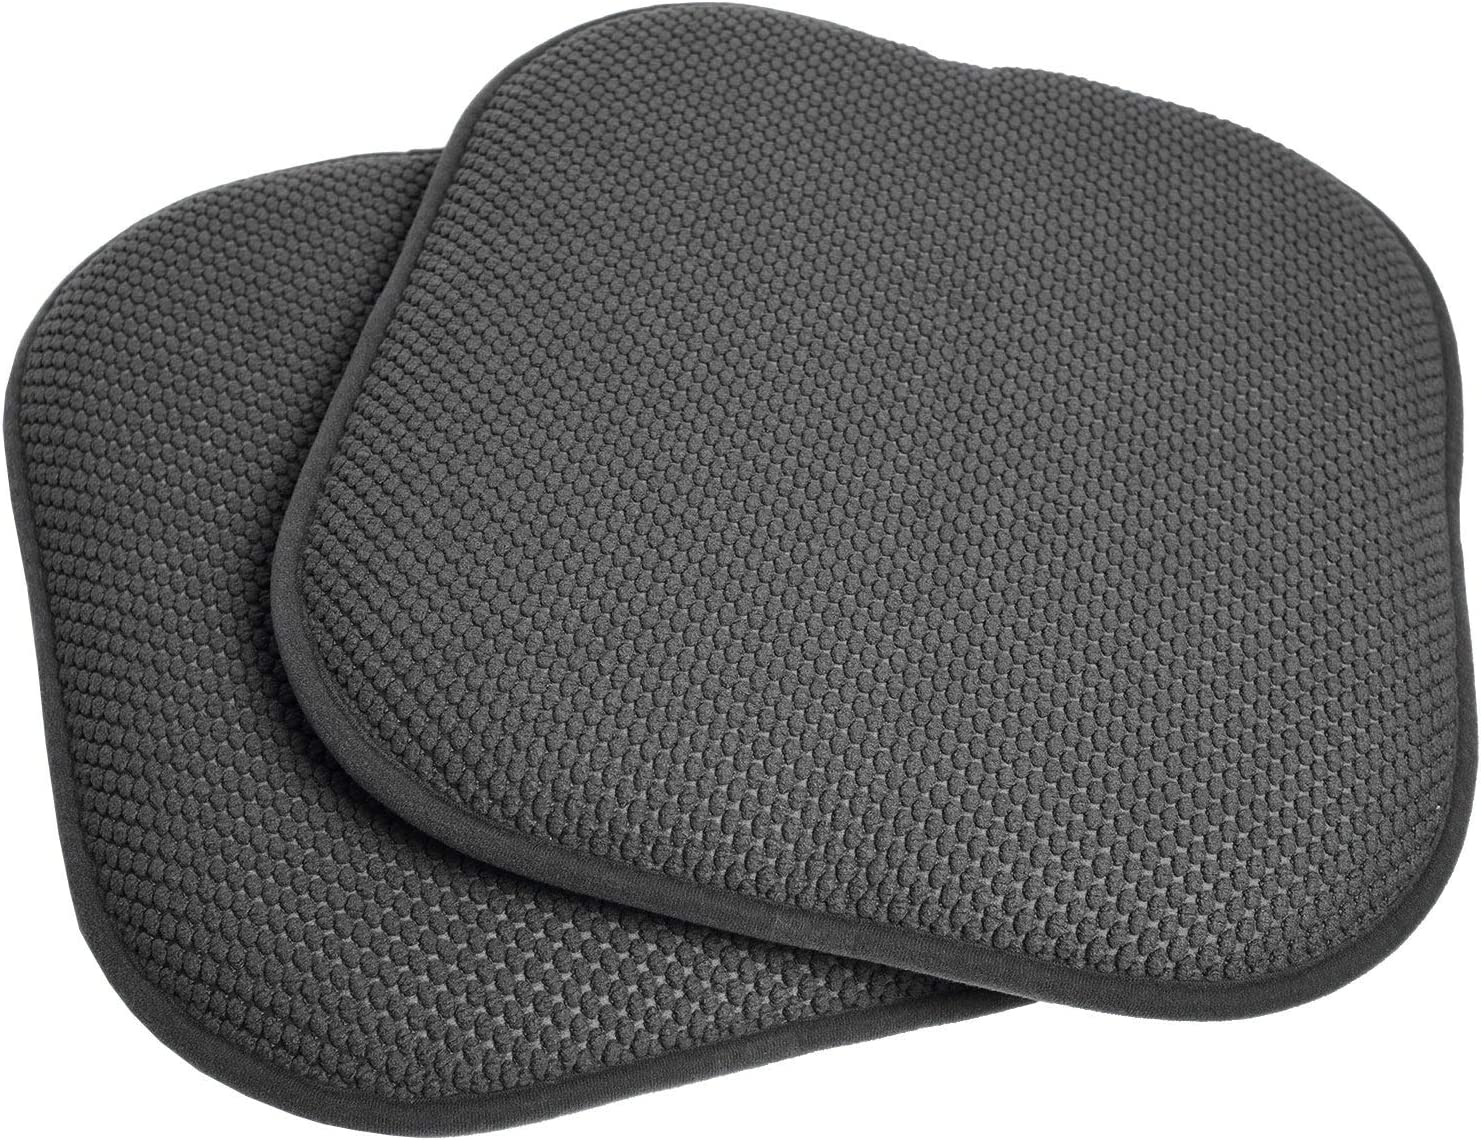 Sweet Home Collection 16x16 Memory Foam Non-Slip Chair Pad Seat Cushion Sets - 16 X 16 Grey Set of 2 Indoor-Outdoor, Lounge, Non Slip